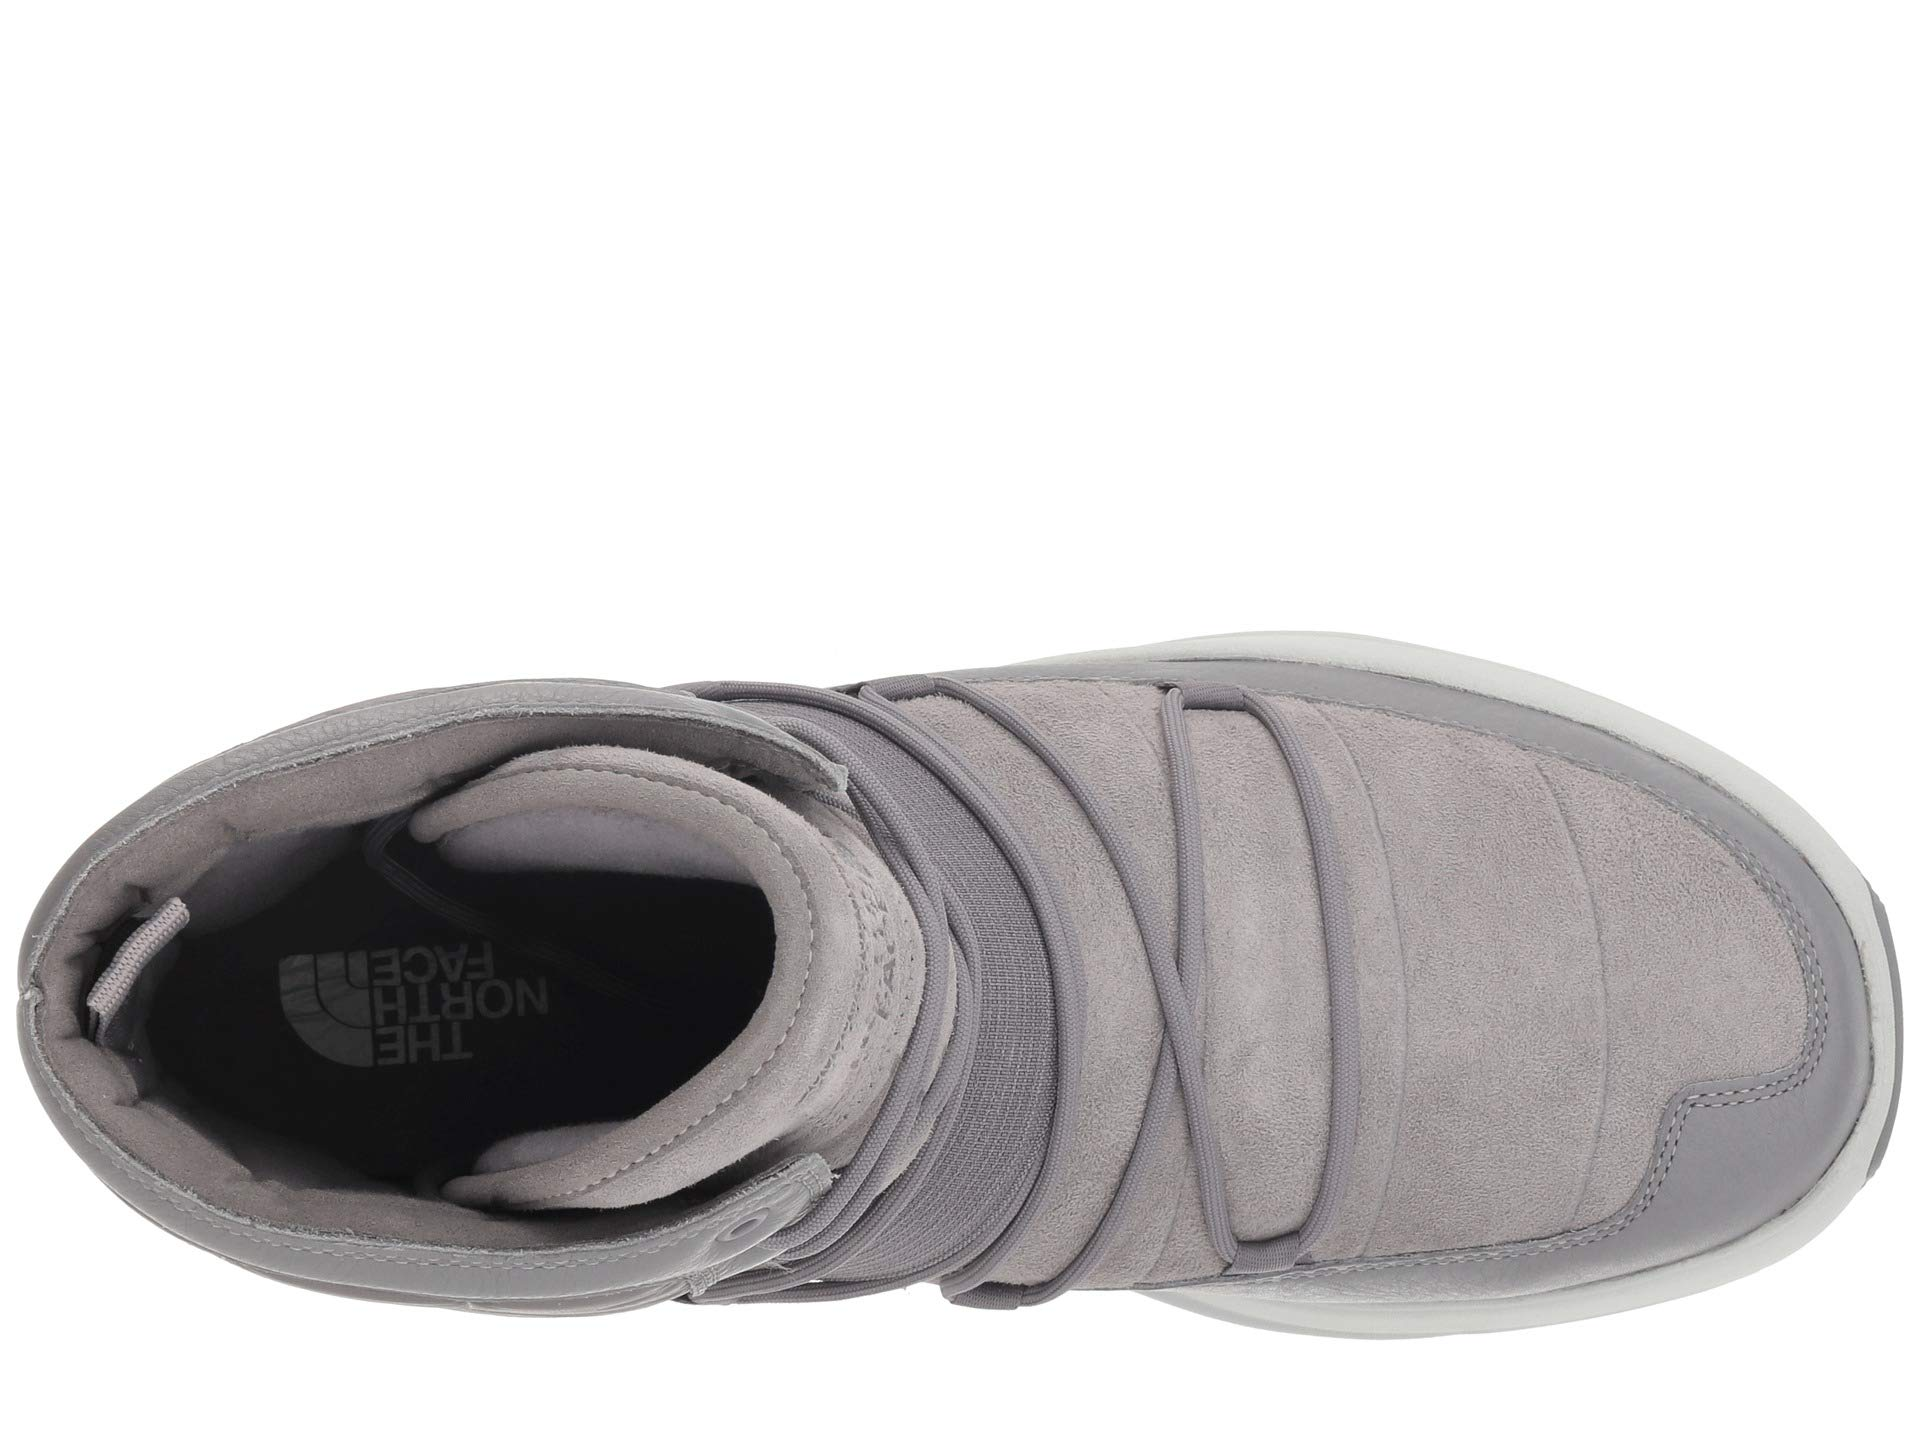 Park The tin Winter Frost Grey Ozone North Face Boot Grey tP8qOP